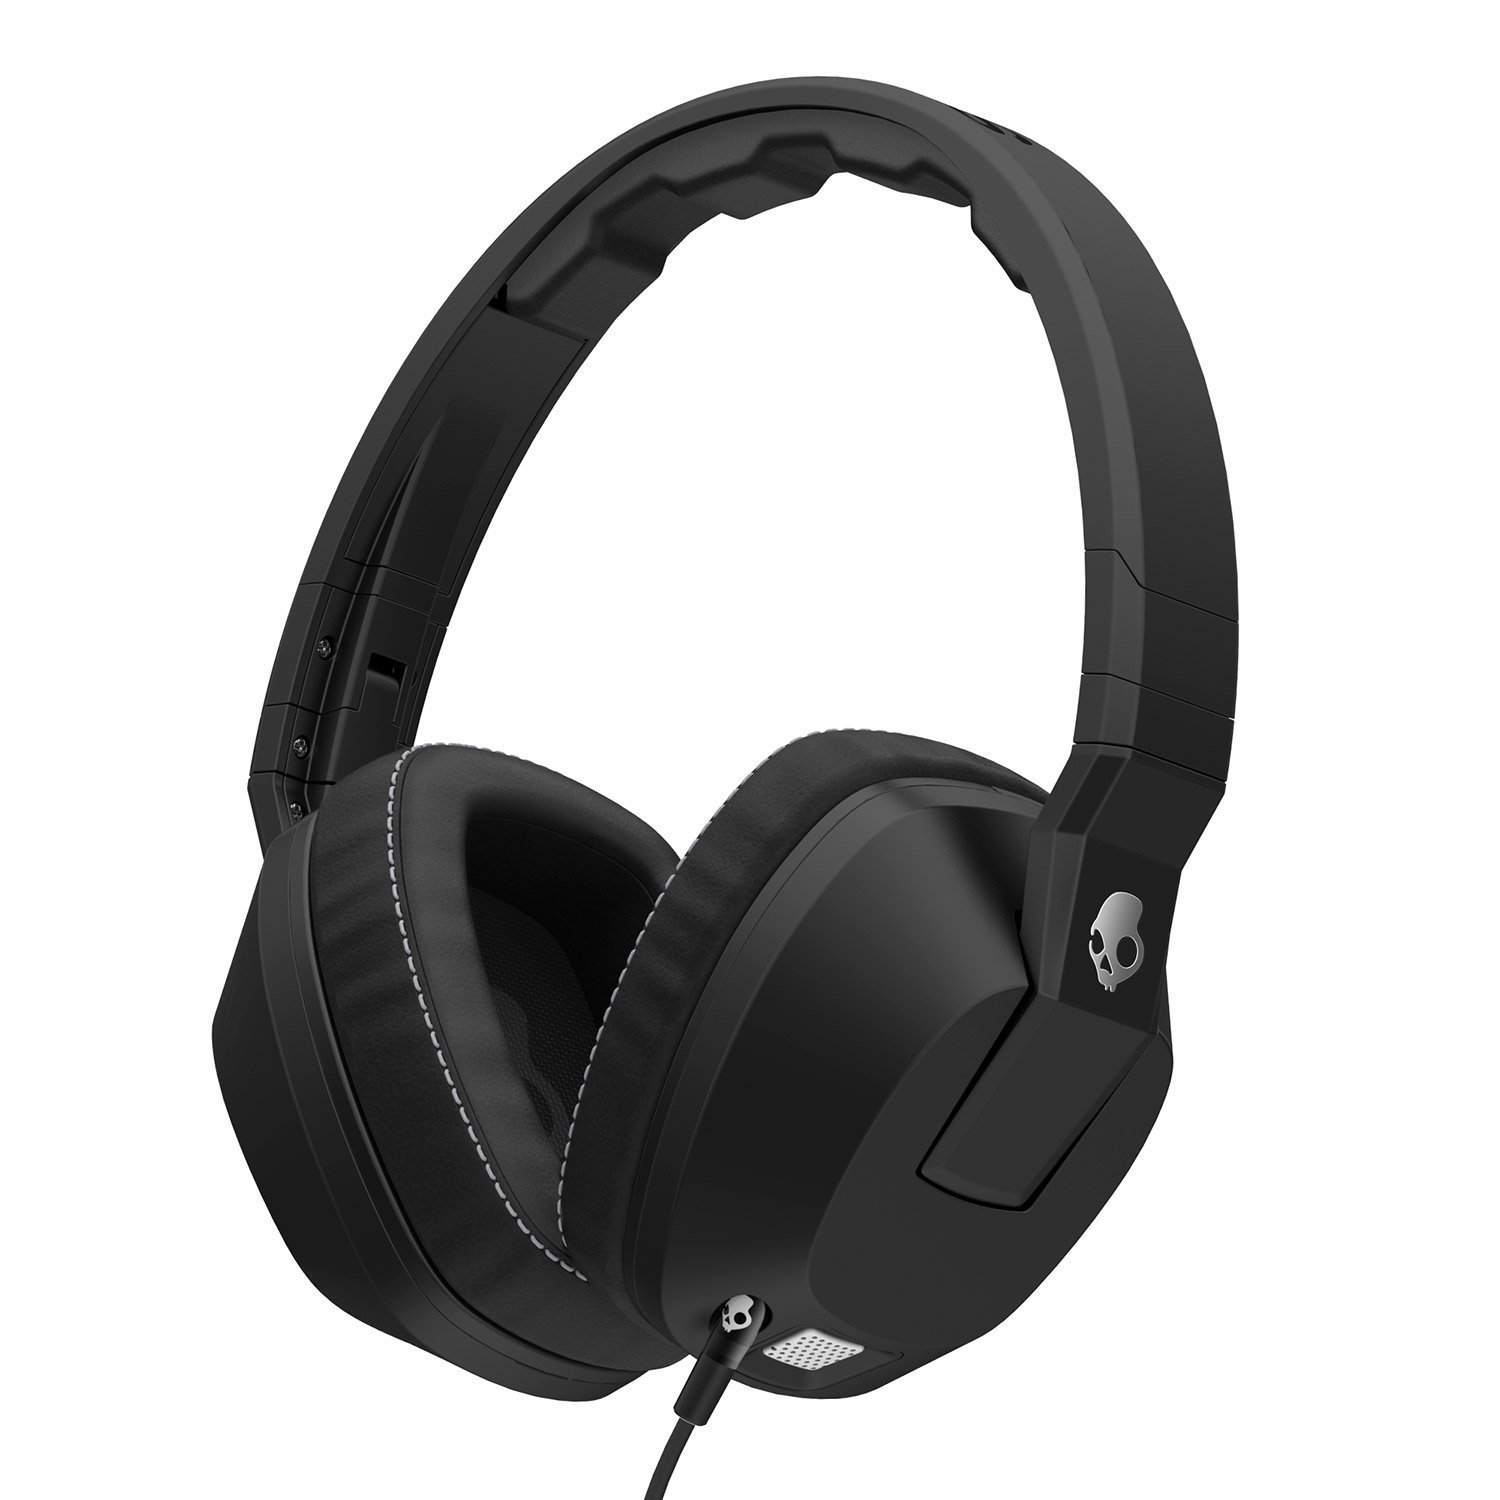 Skullcandy Crusher Headphones with Built-in Amplifier and Mic, Black by Skullcandy